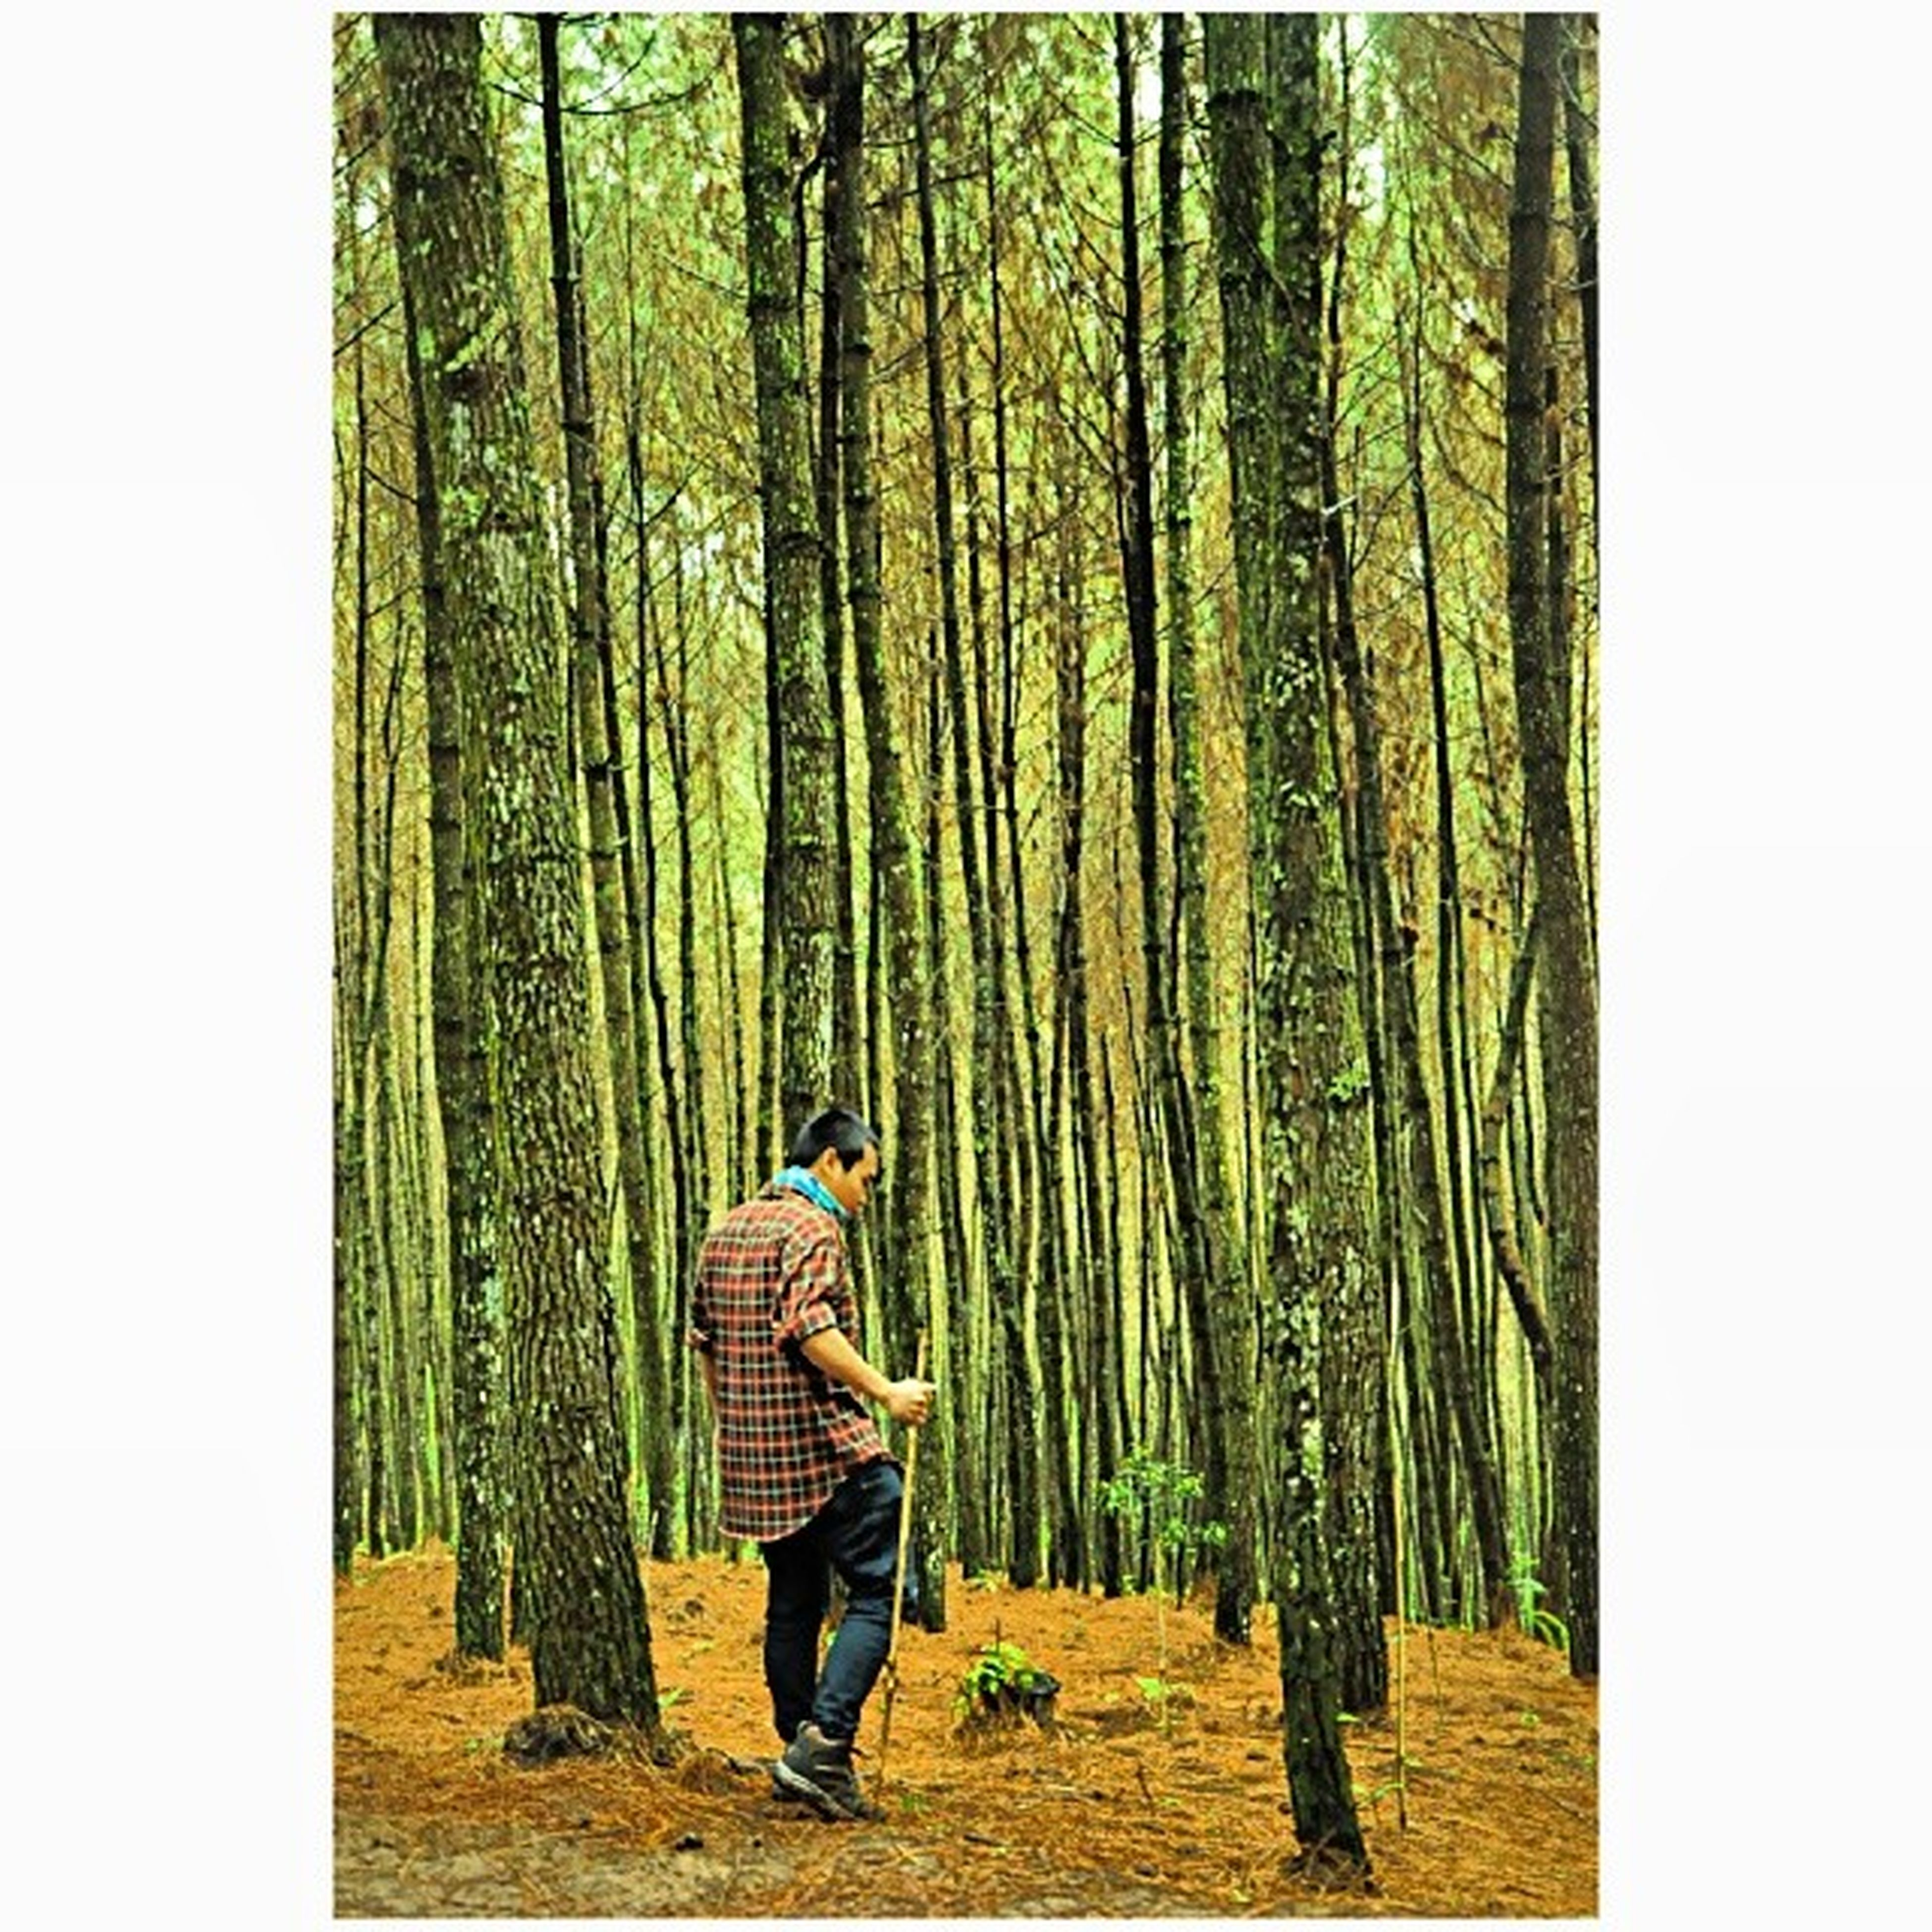 lifestyles, leisure activity, transfer print, rear view, casual clothing, auto post production filter, standing, person, full length, tree, men, green color, walking, growth, day, outdoors, dress, hanging